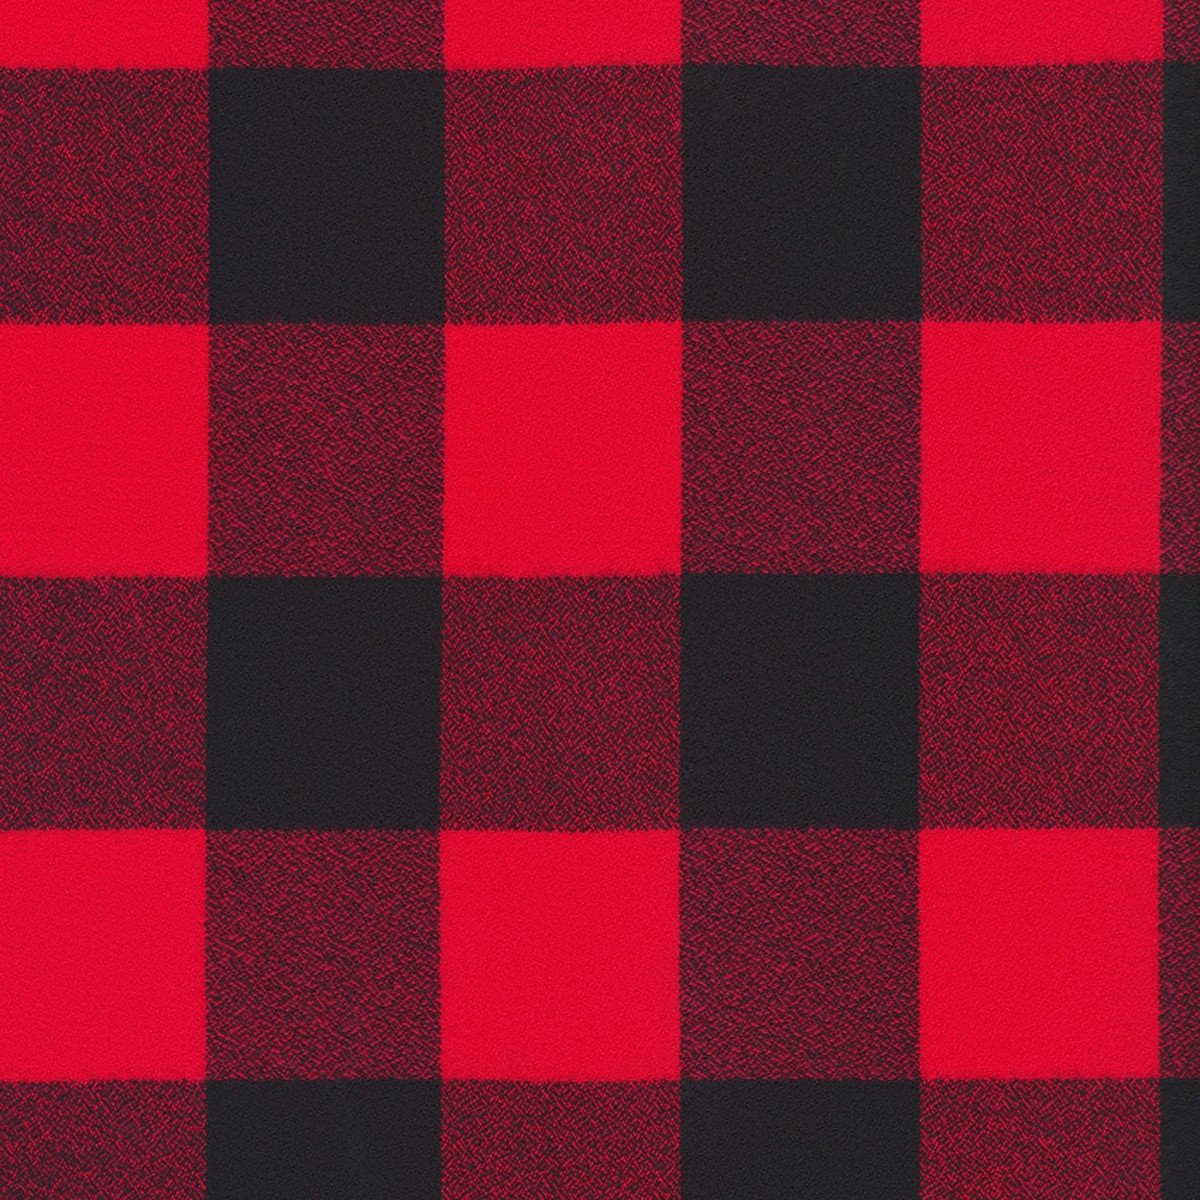 Mammoth Flannel - Buffalo Check Red & Black Large 16943-3 Red